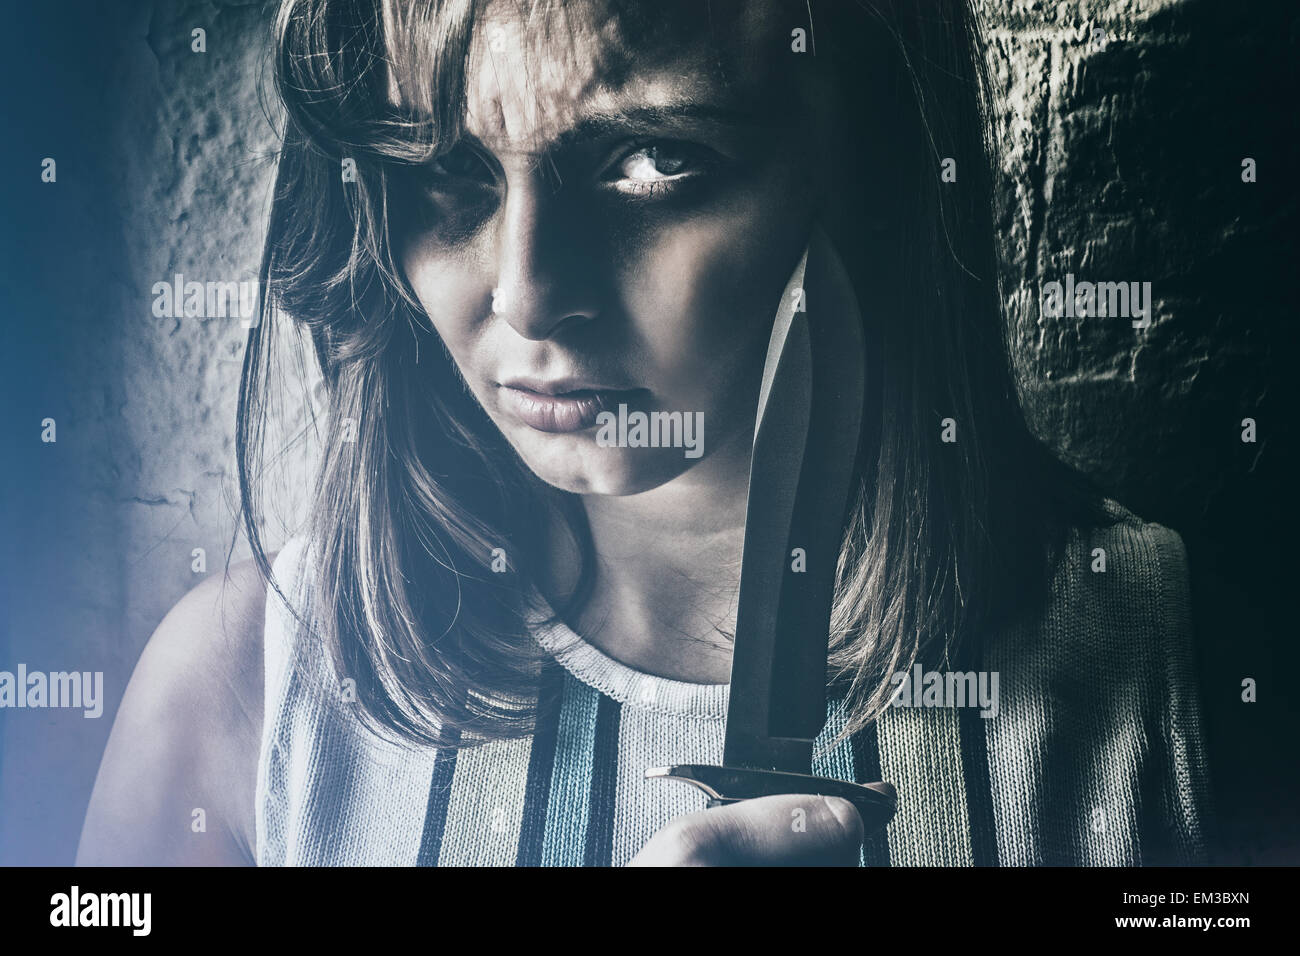 Angry woman holding a dagger - Stock Image